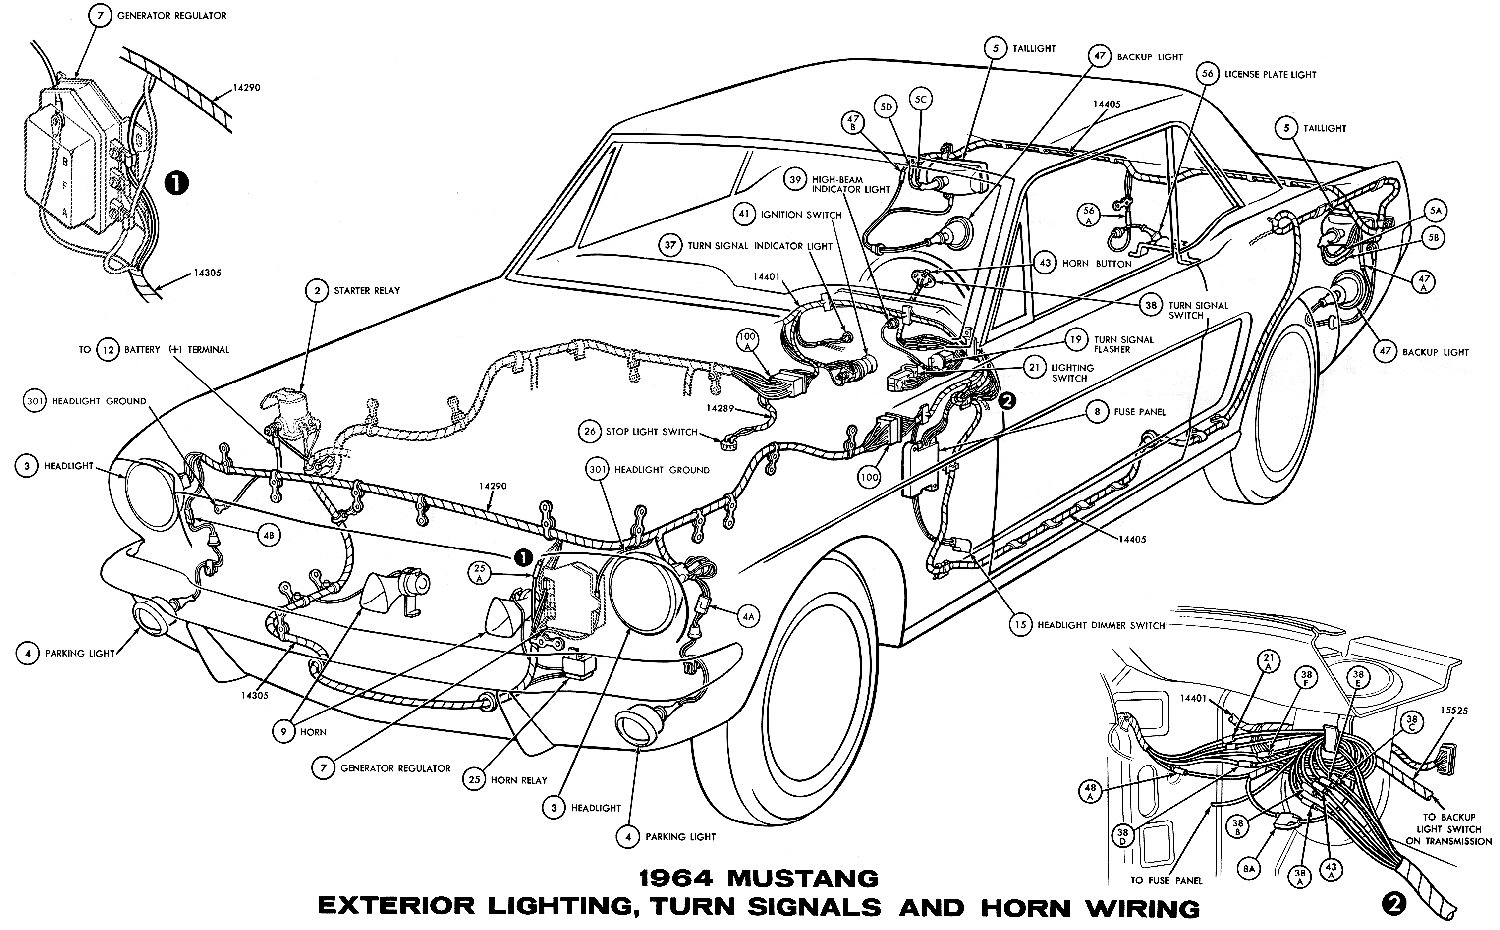 1964h 1964 mustang wiring diagrams average joe restoration 1967 mustang turn signal wiring diagram at soozxer.org